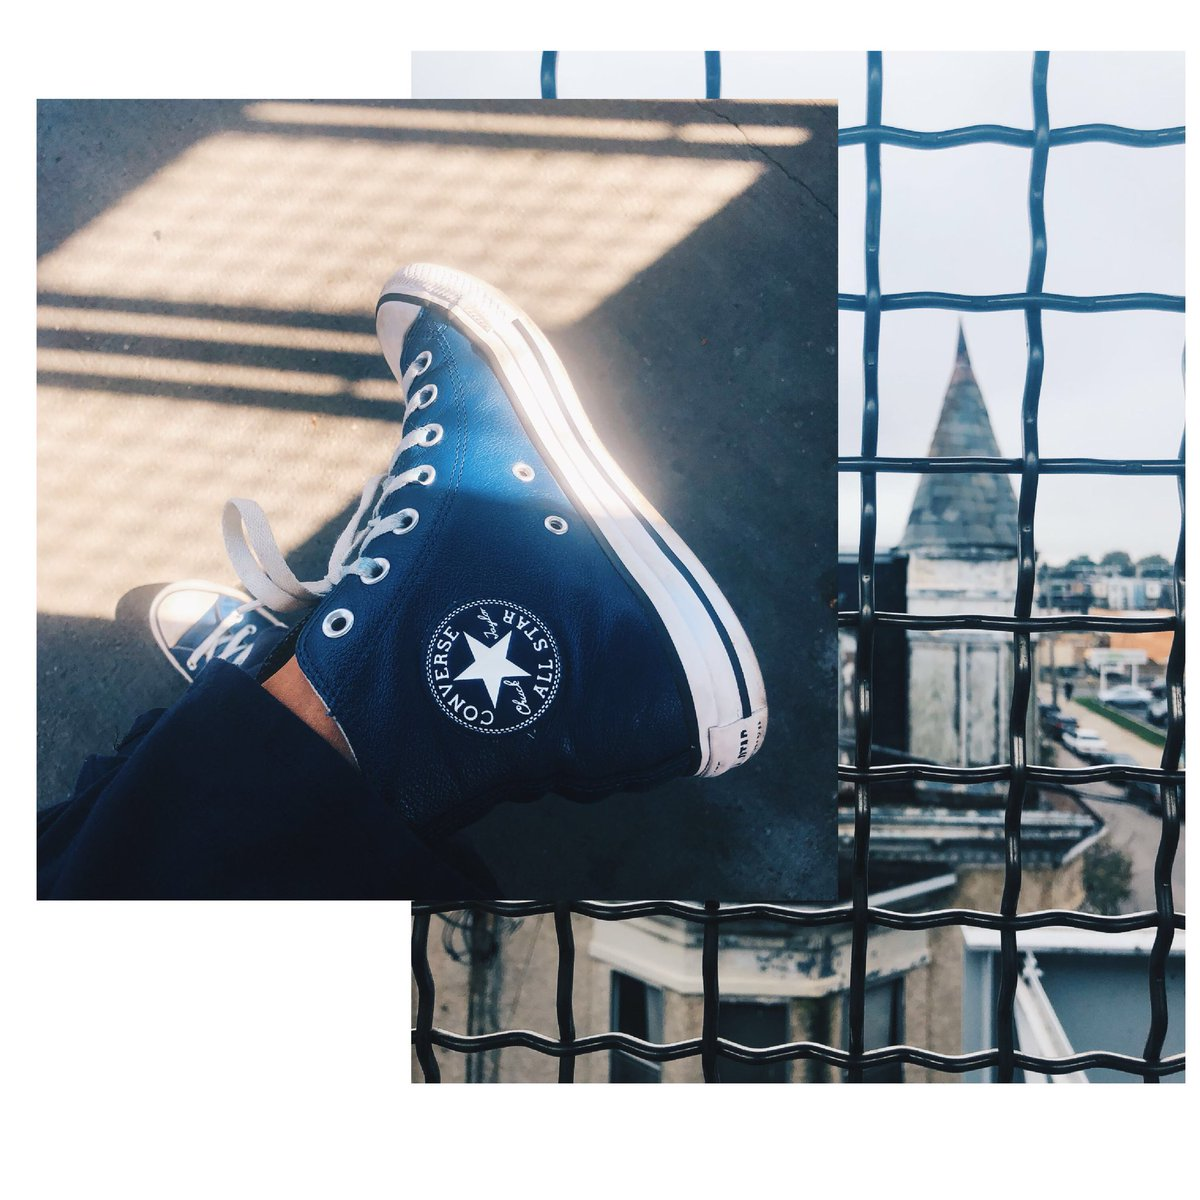 KP on Twitter: New work.... #photography #photographer #photooftheday #collageart #collage @Converse #streetdreamsmag #streetphotography #fineartphotography #shotoniphone #iphonex #newwork #photoshop…